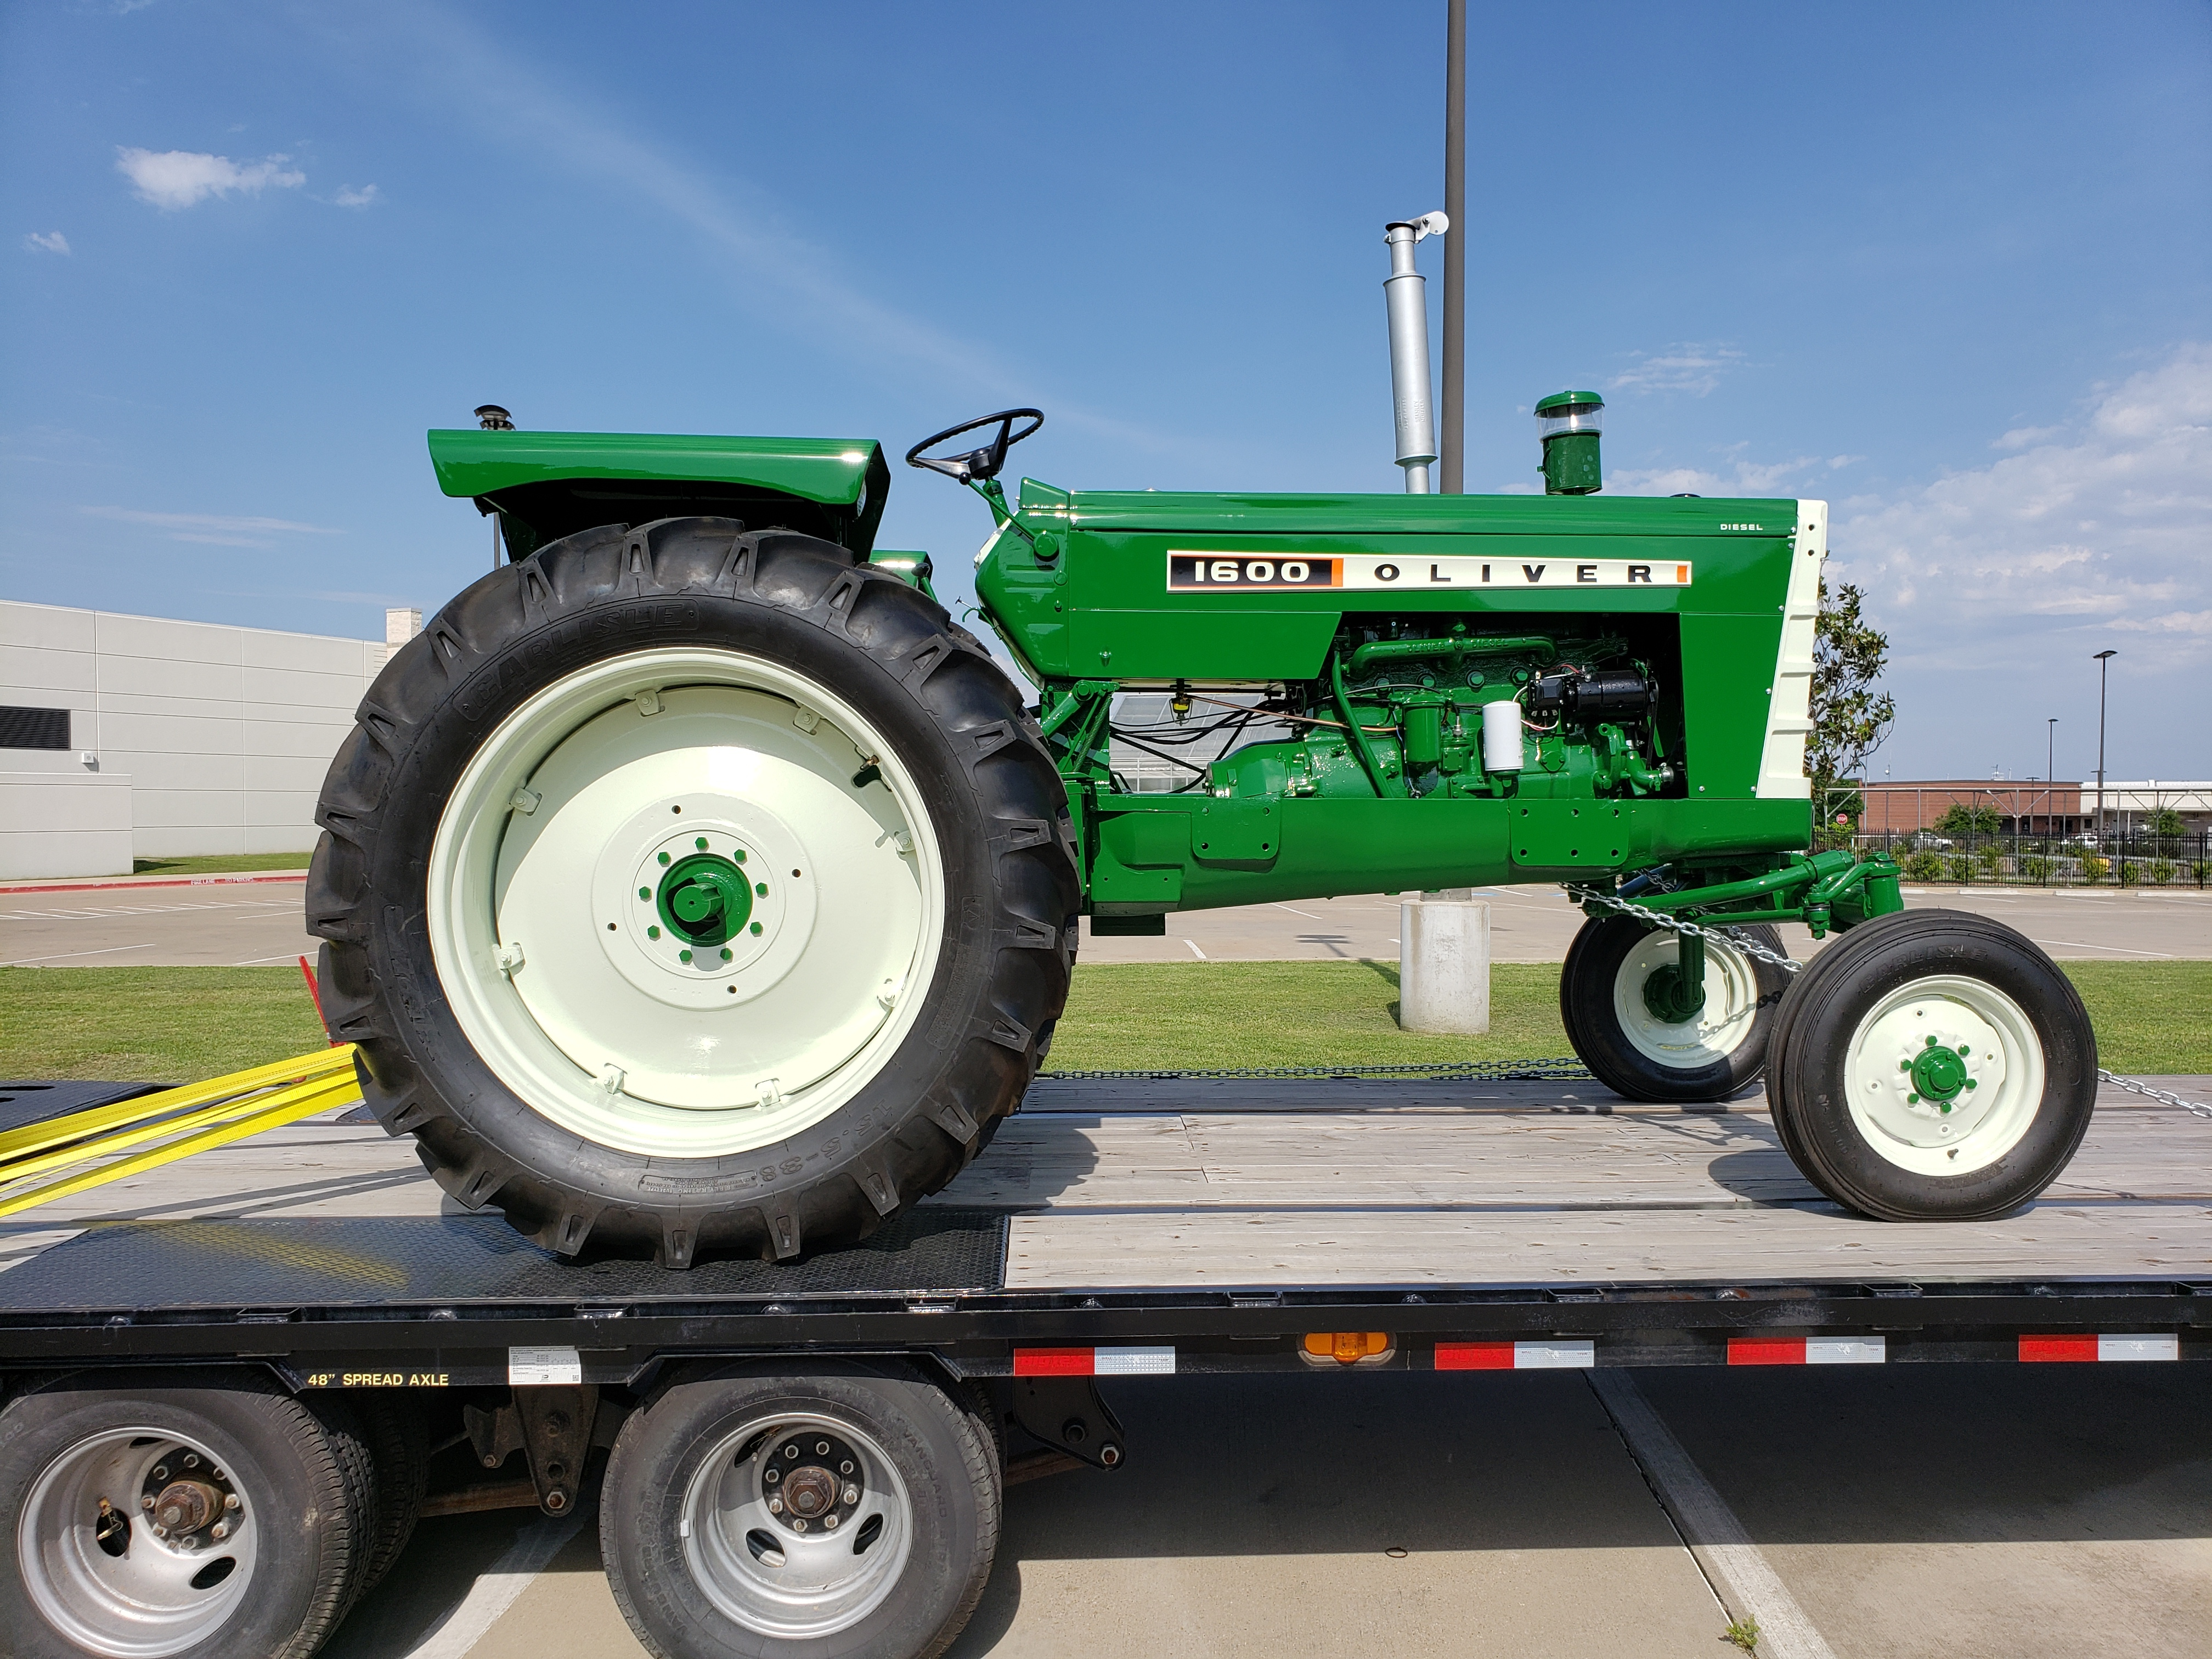 1962 Oliver 1600 Tractor